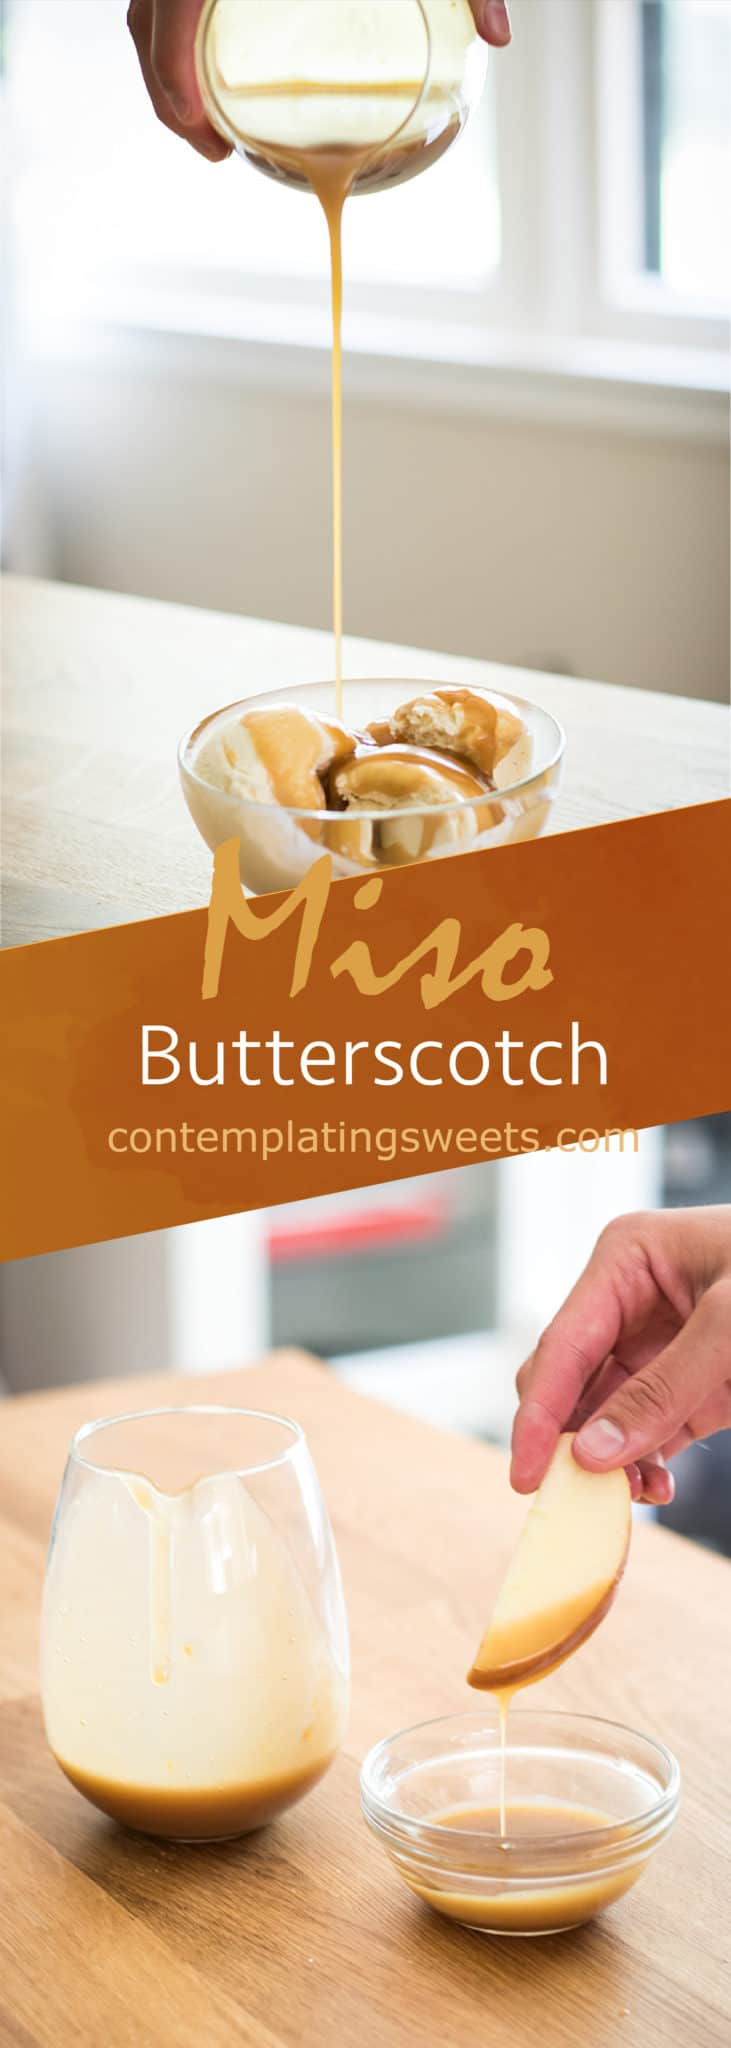 Miso butterscotch: Sweet and salty butterscotch gets a hit of umami from miso! This misobutterscotch will be your new favorite fusion dessert.